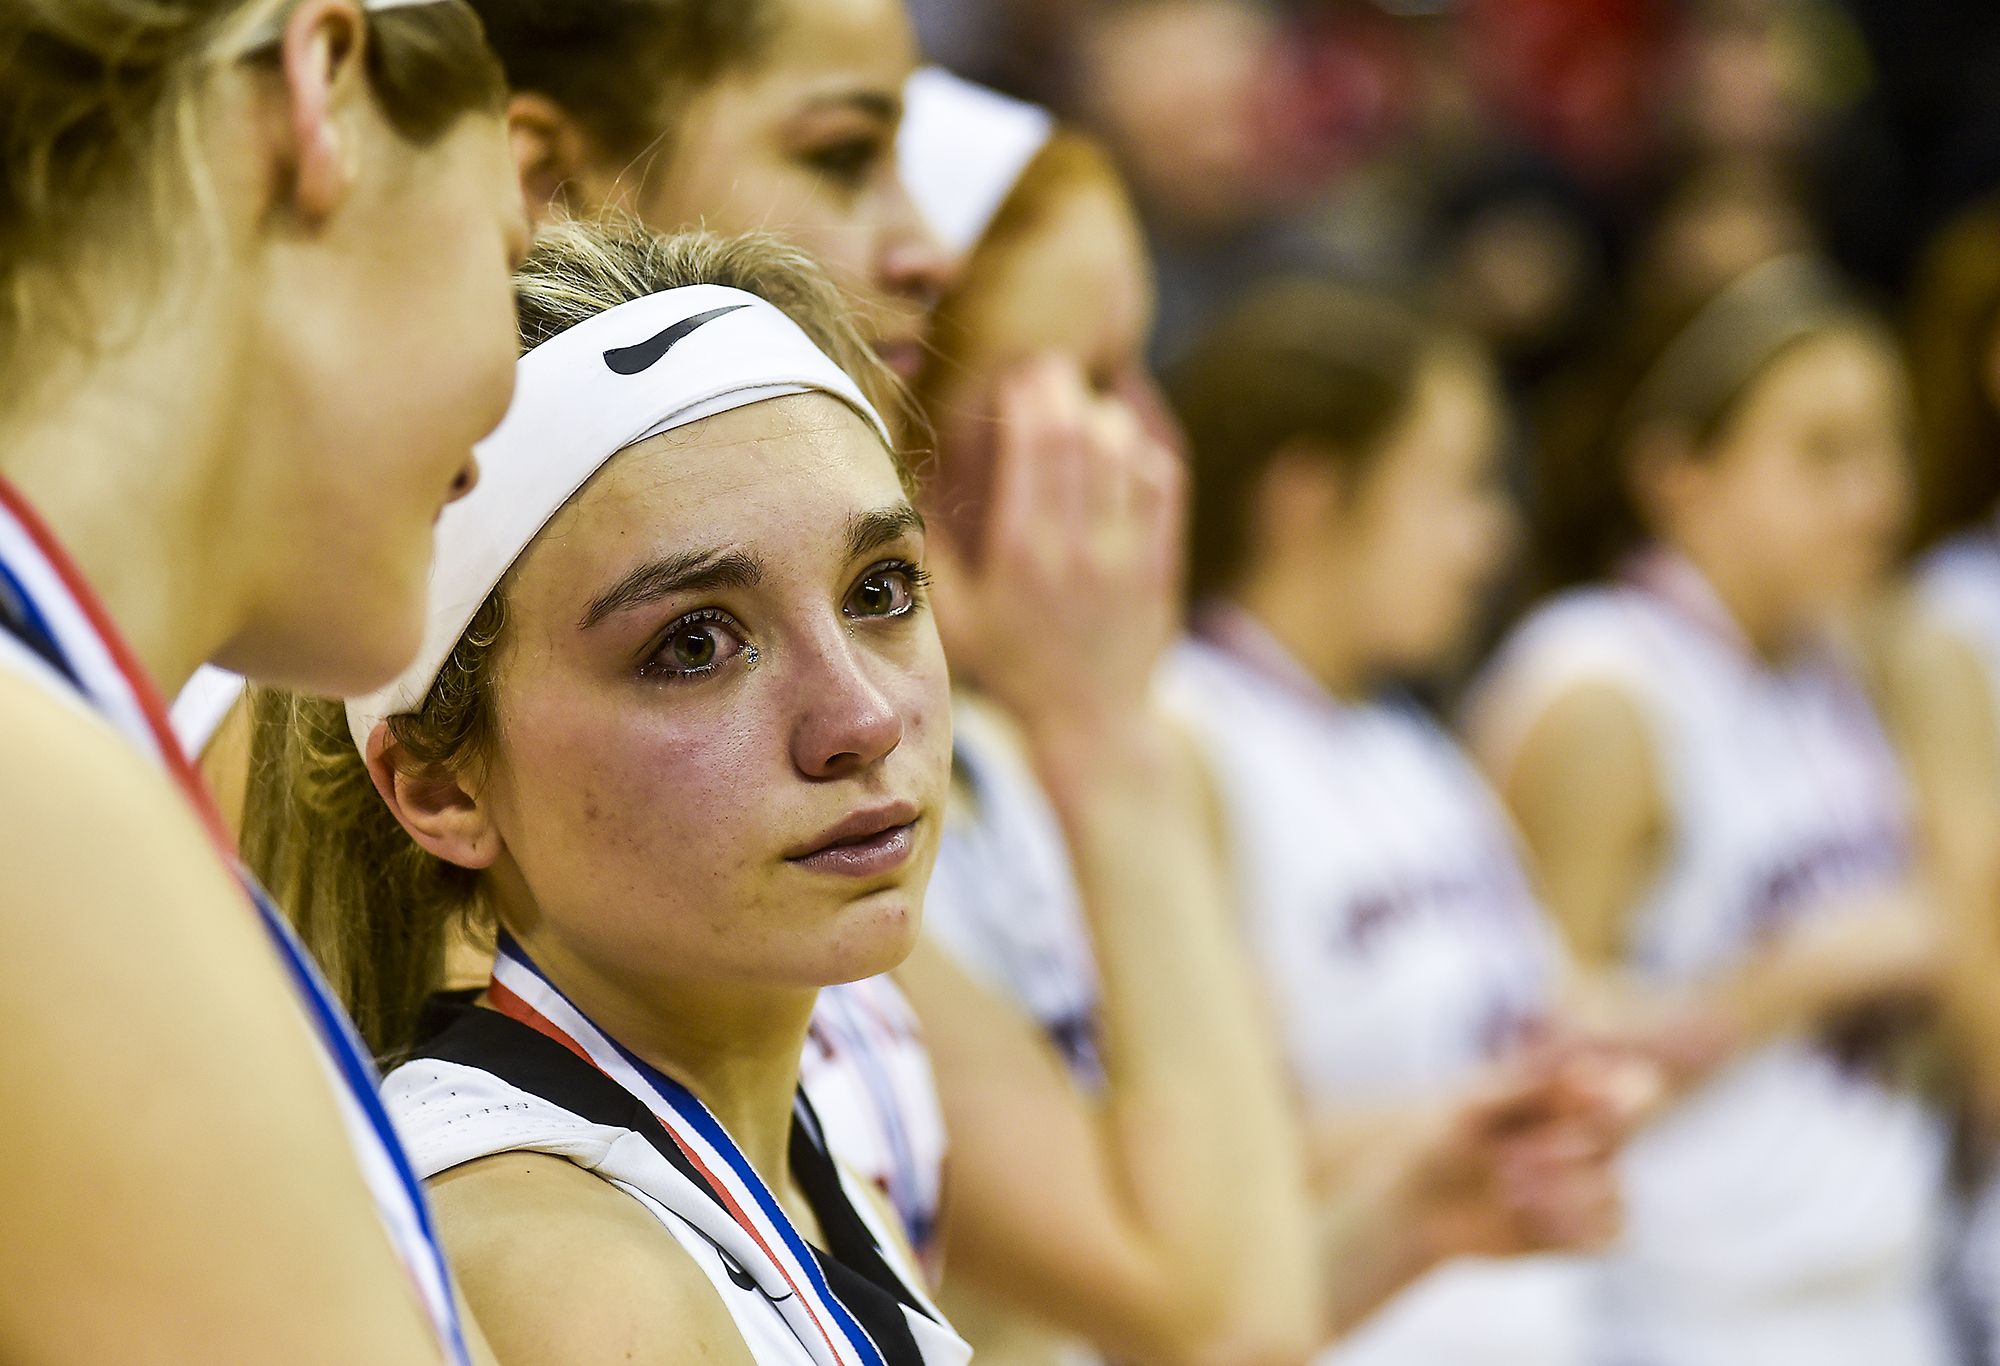 Tears run down Camryn Kimmel's face as she and the rest of her team, from Pleasant High School in Marion, Ohio, accept the second place trophy after falling to Africentric High School at the State Championship basketball game on Saturday, March 12 at the Schottenstein center in Columbus, Ohio. Camryn Kimmell and her teammates made up the first women's basketball team from Pleasant High School to make it to the championships.